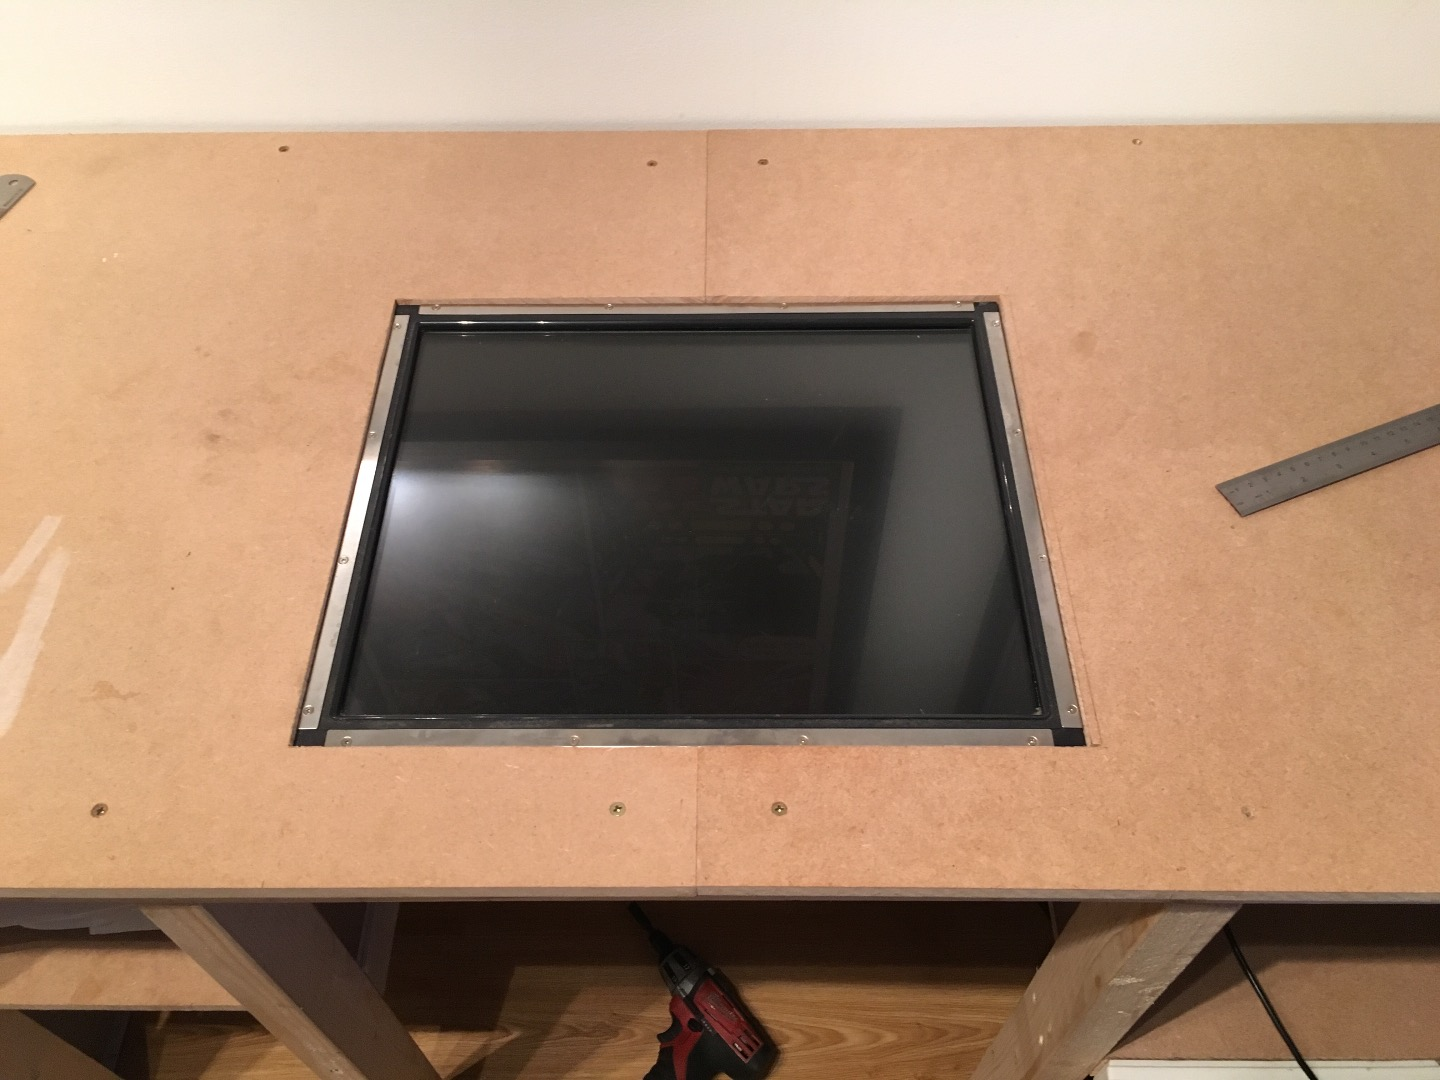 Picture of Fabricate/buy Some Cheap Brackets Then Mount the Screen